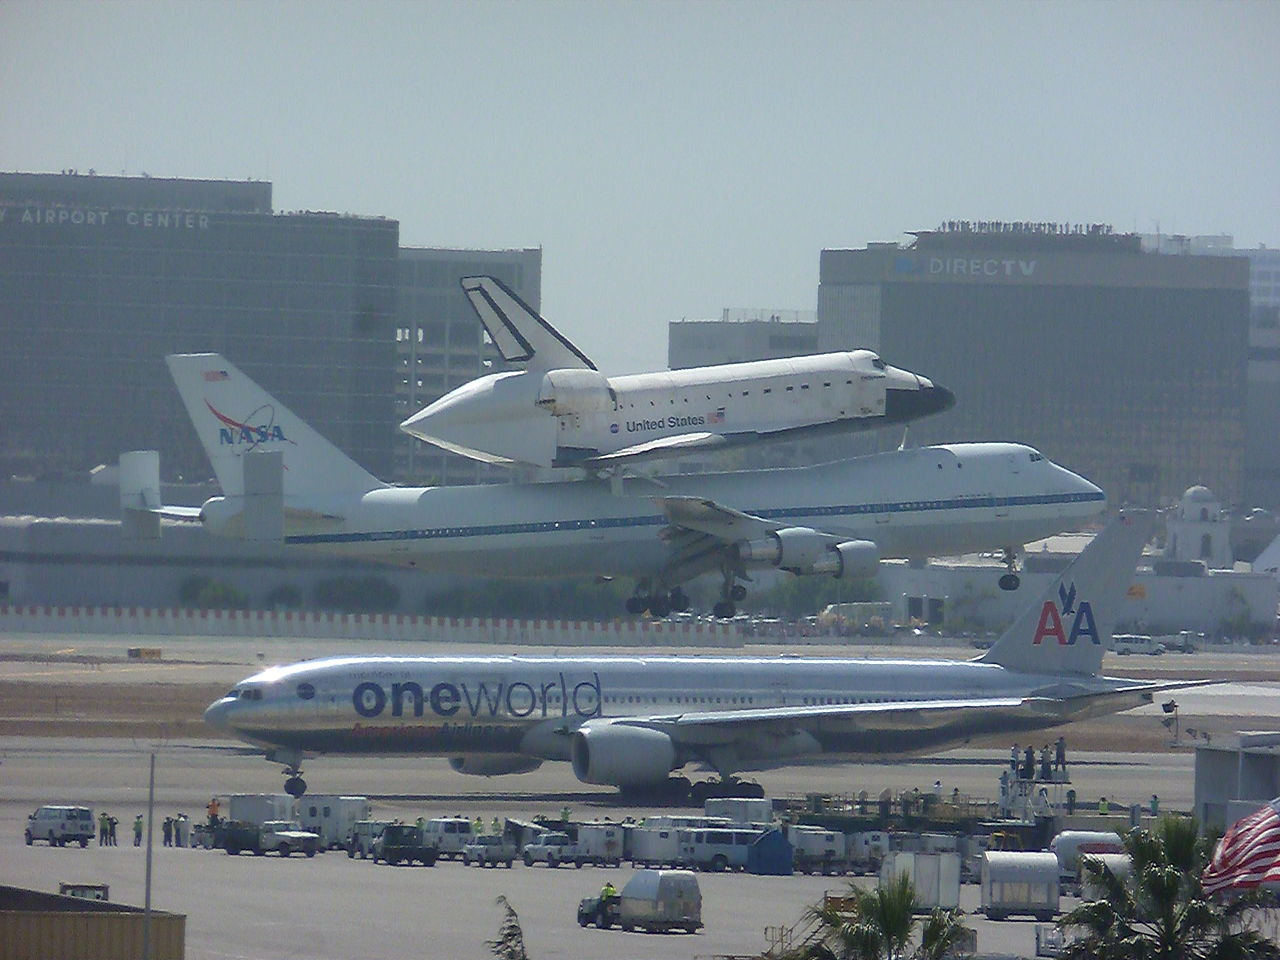 Endeavour at Los Angeles International Airport